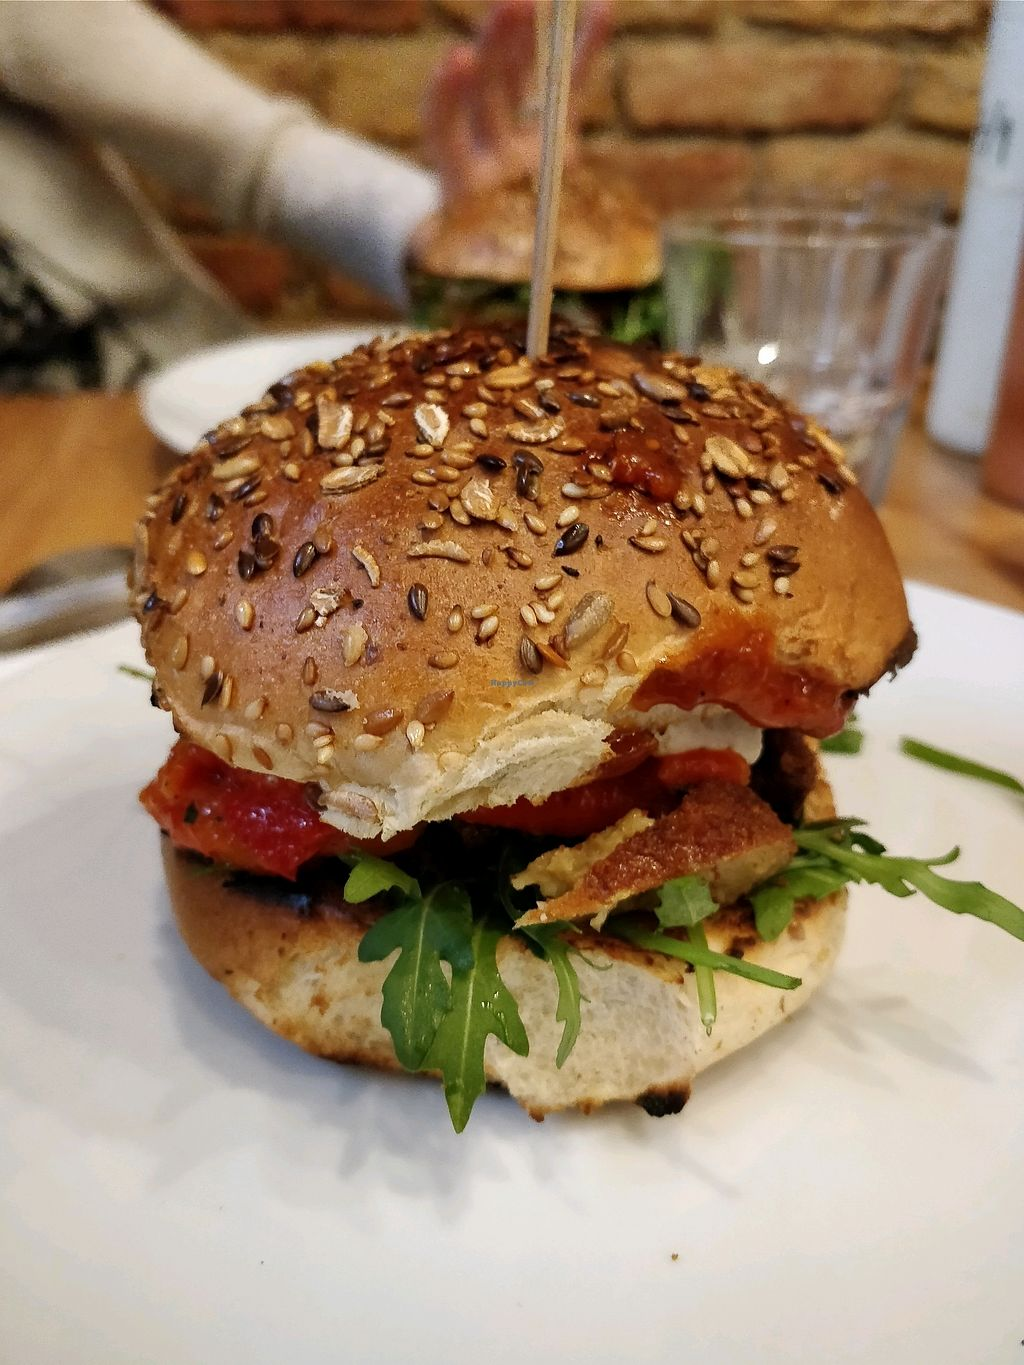 """Photo of Lia's Kitchen  by <a href=""""/members/profile/Chrisarnold"""">Chrisarnold</a> <br/>Delicious vegan chicken, fetta burger! <br/> January 29, 2018  - <a href='/contact/abuse/image/82729/352414'>Report</a>"""